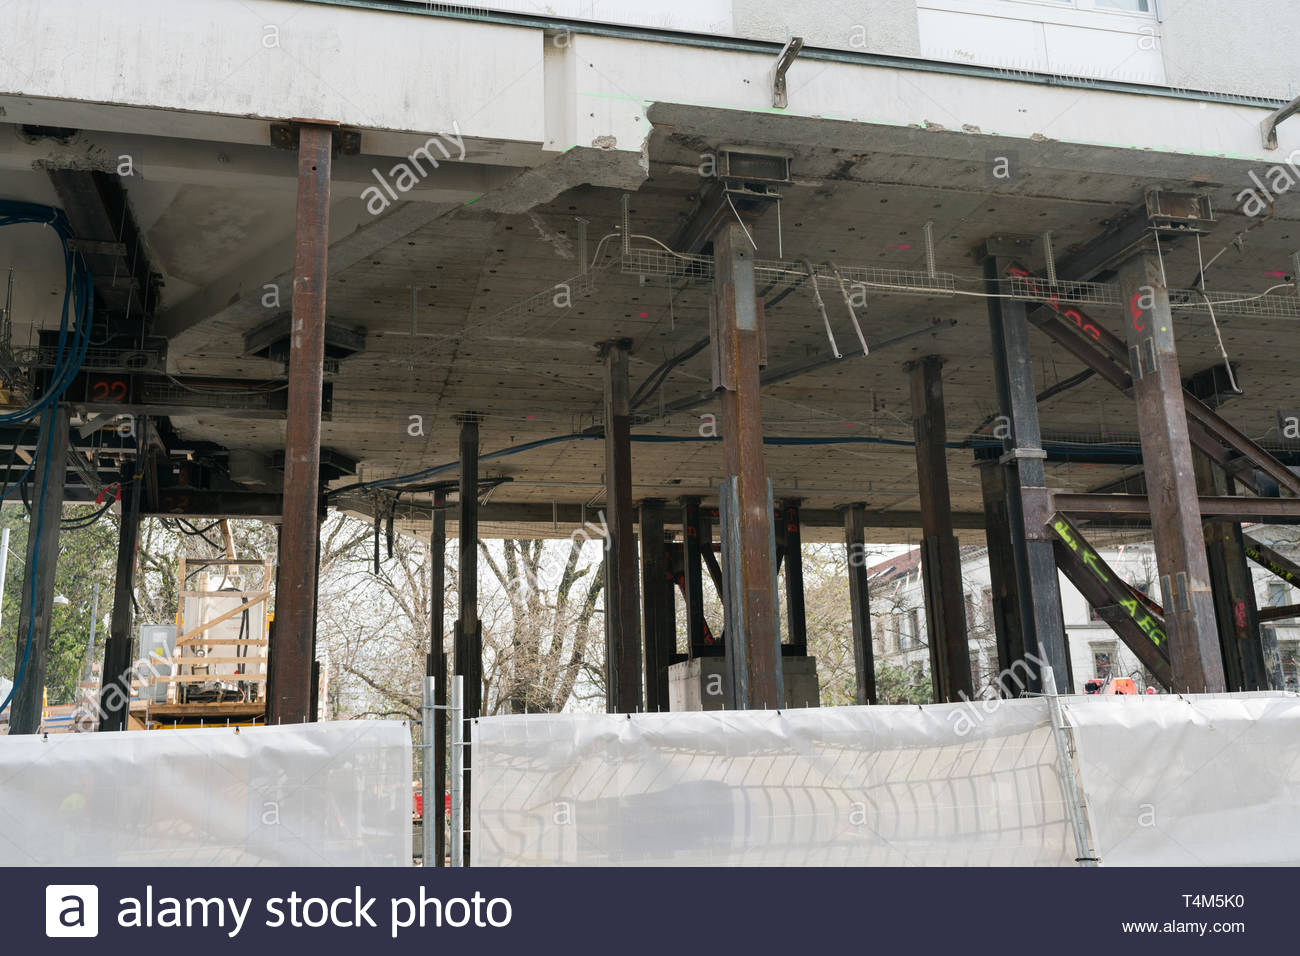 incredible view of how heavy industrial stilts hold up a multi-story building while the ground floor is demolished and rebuilt - Stock Image